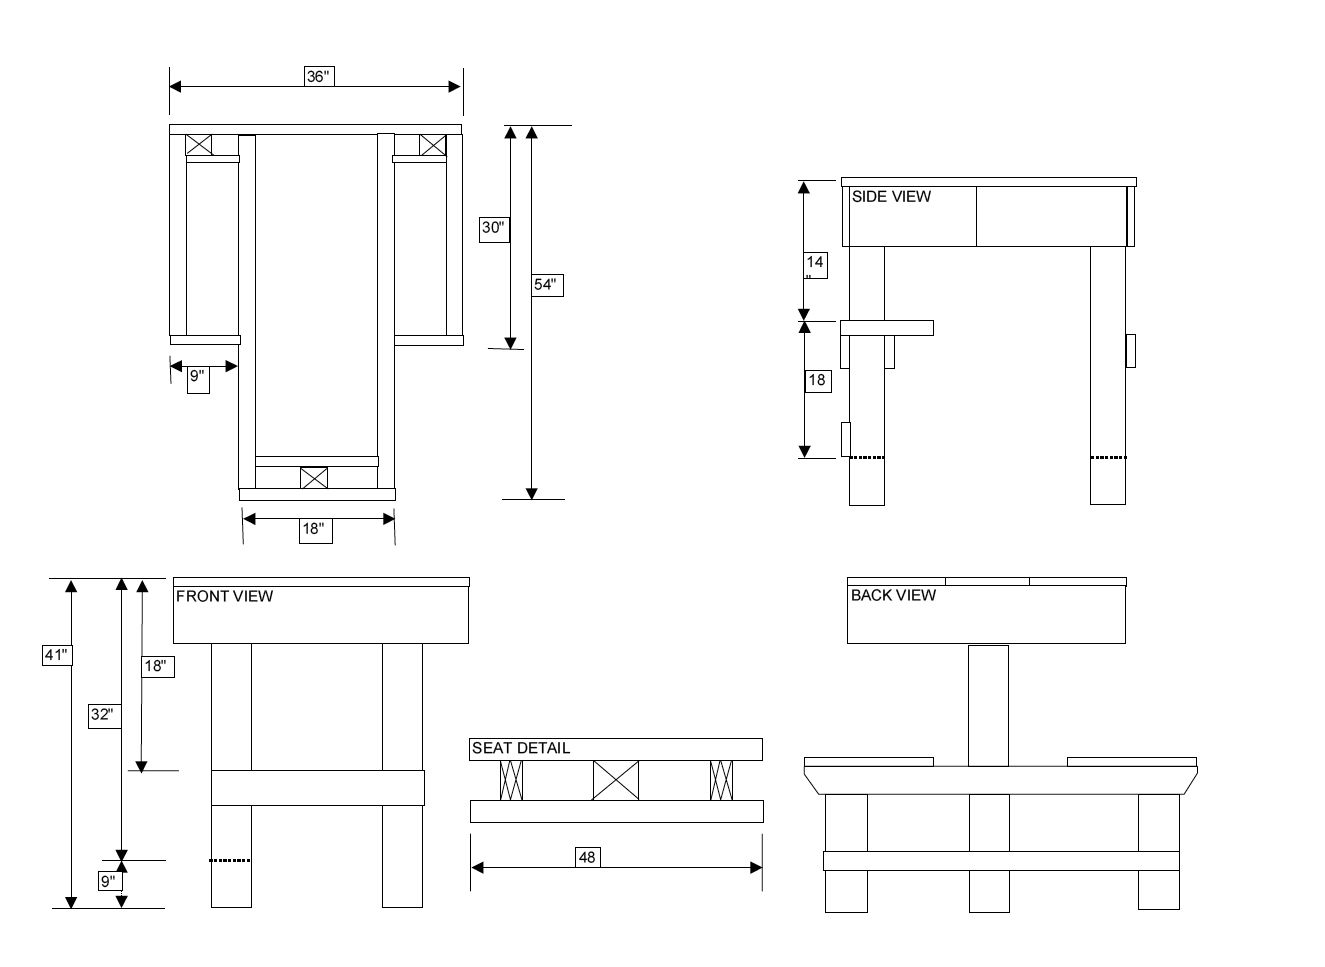 Free shooting bench plans help me design my shooting bench the shooting bench plans plywood mark physique axerophthol stalwart bench for shooting bench blueprints wellspring under 100 in materials malvernweather Image collections